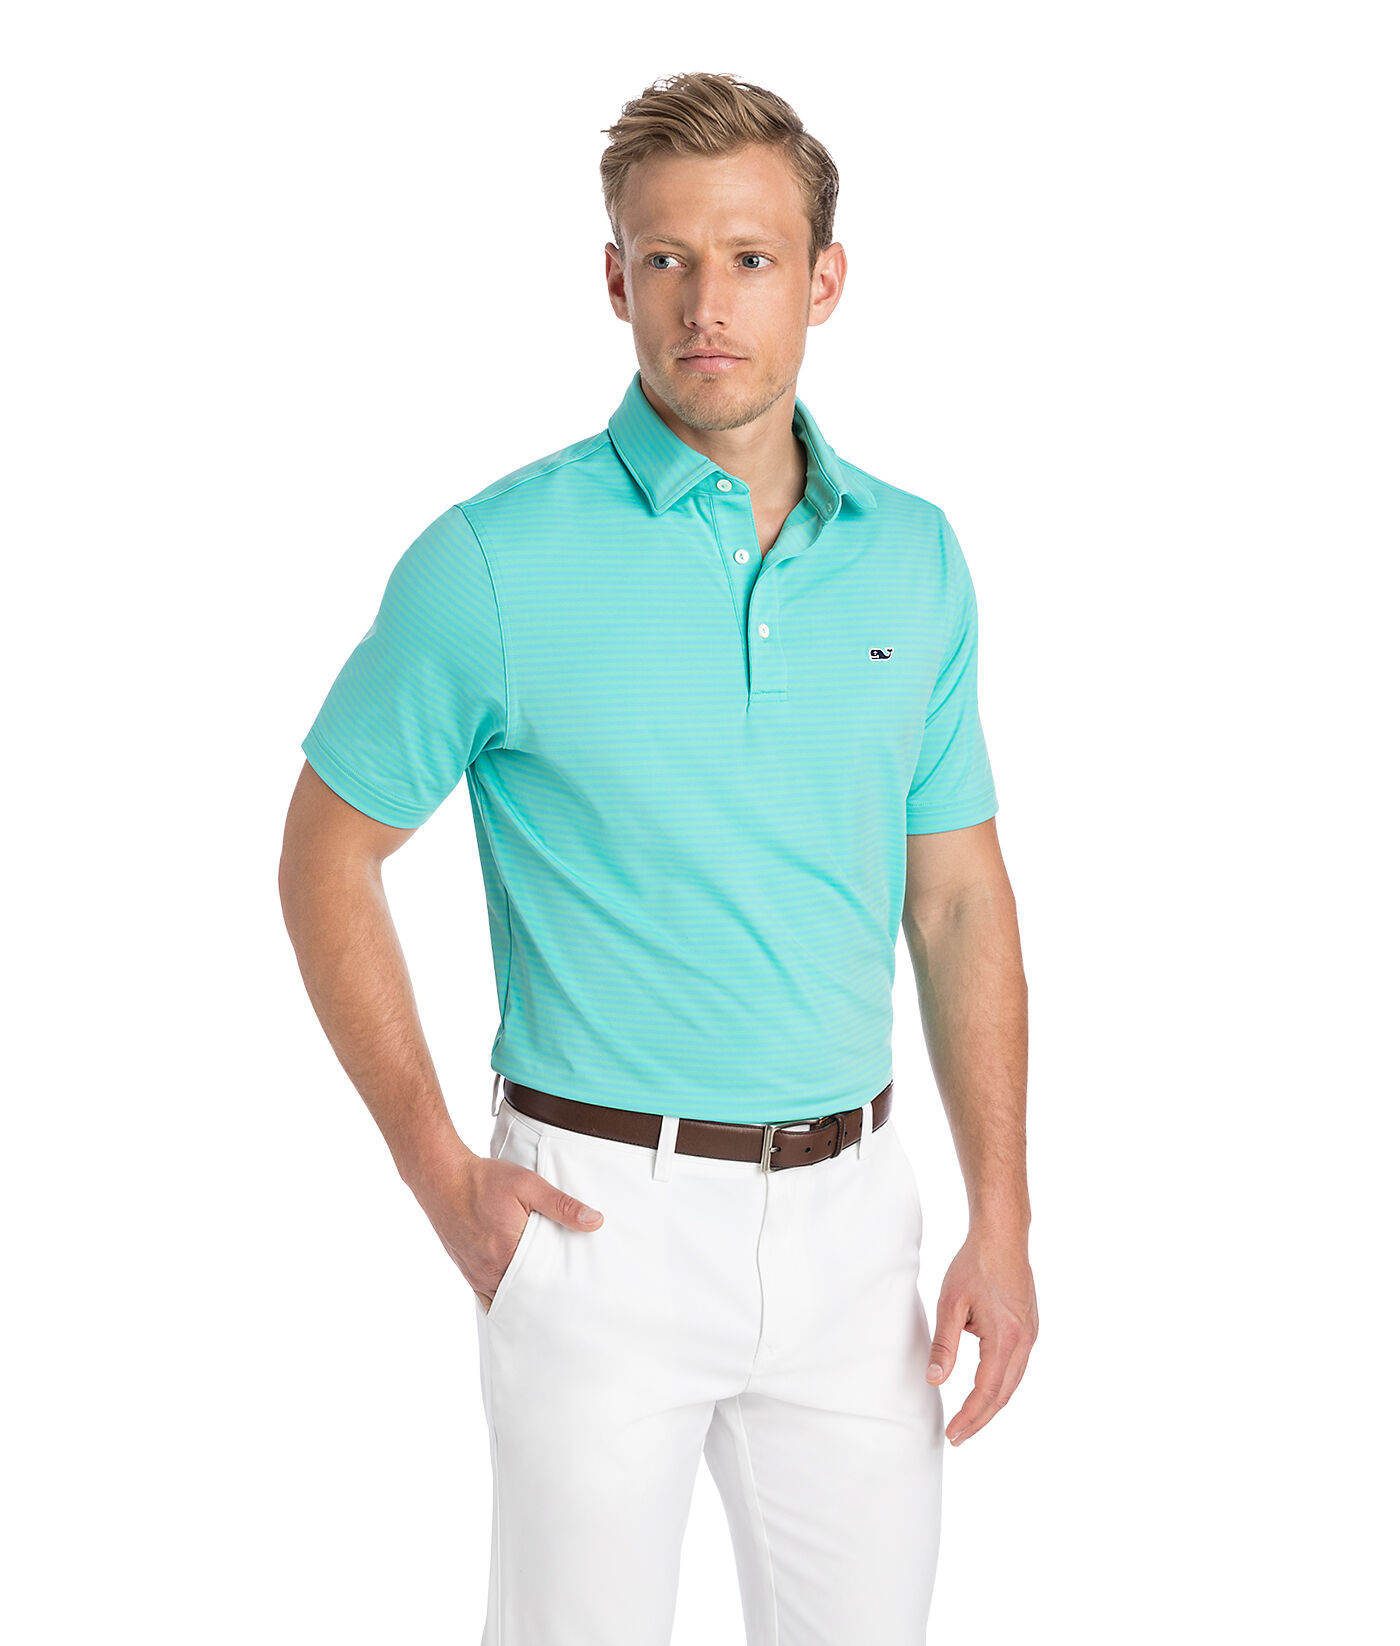 Polo - Polo Life Mss - Royal-White - L OnJeBFtjK